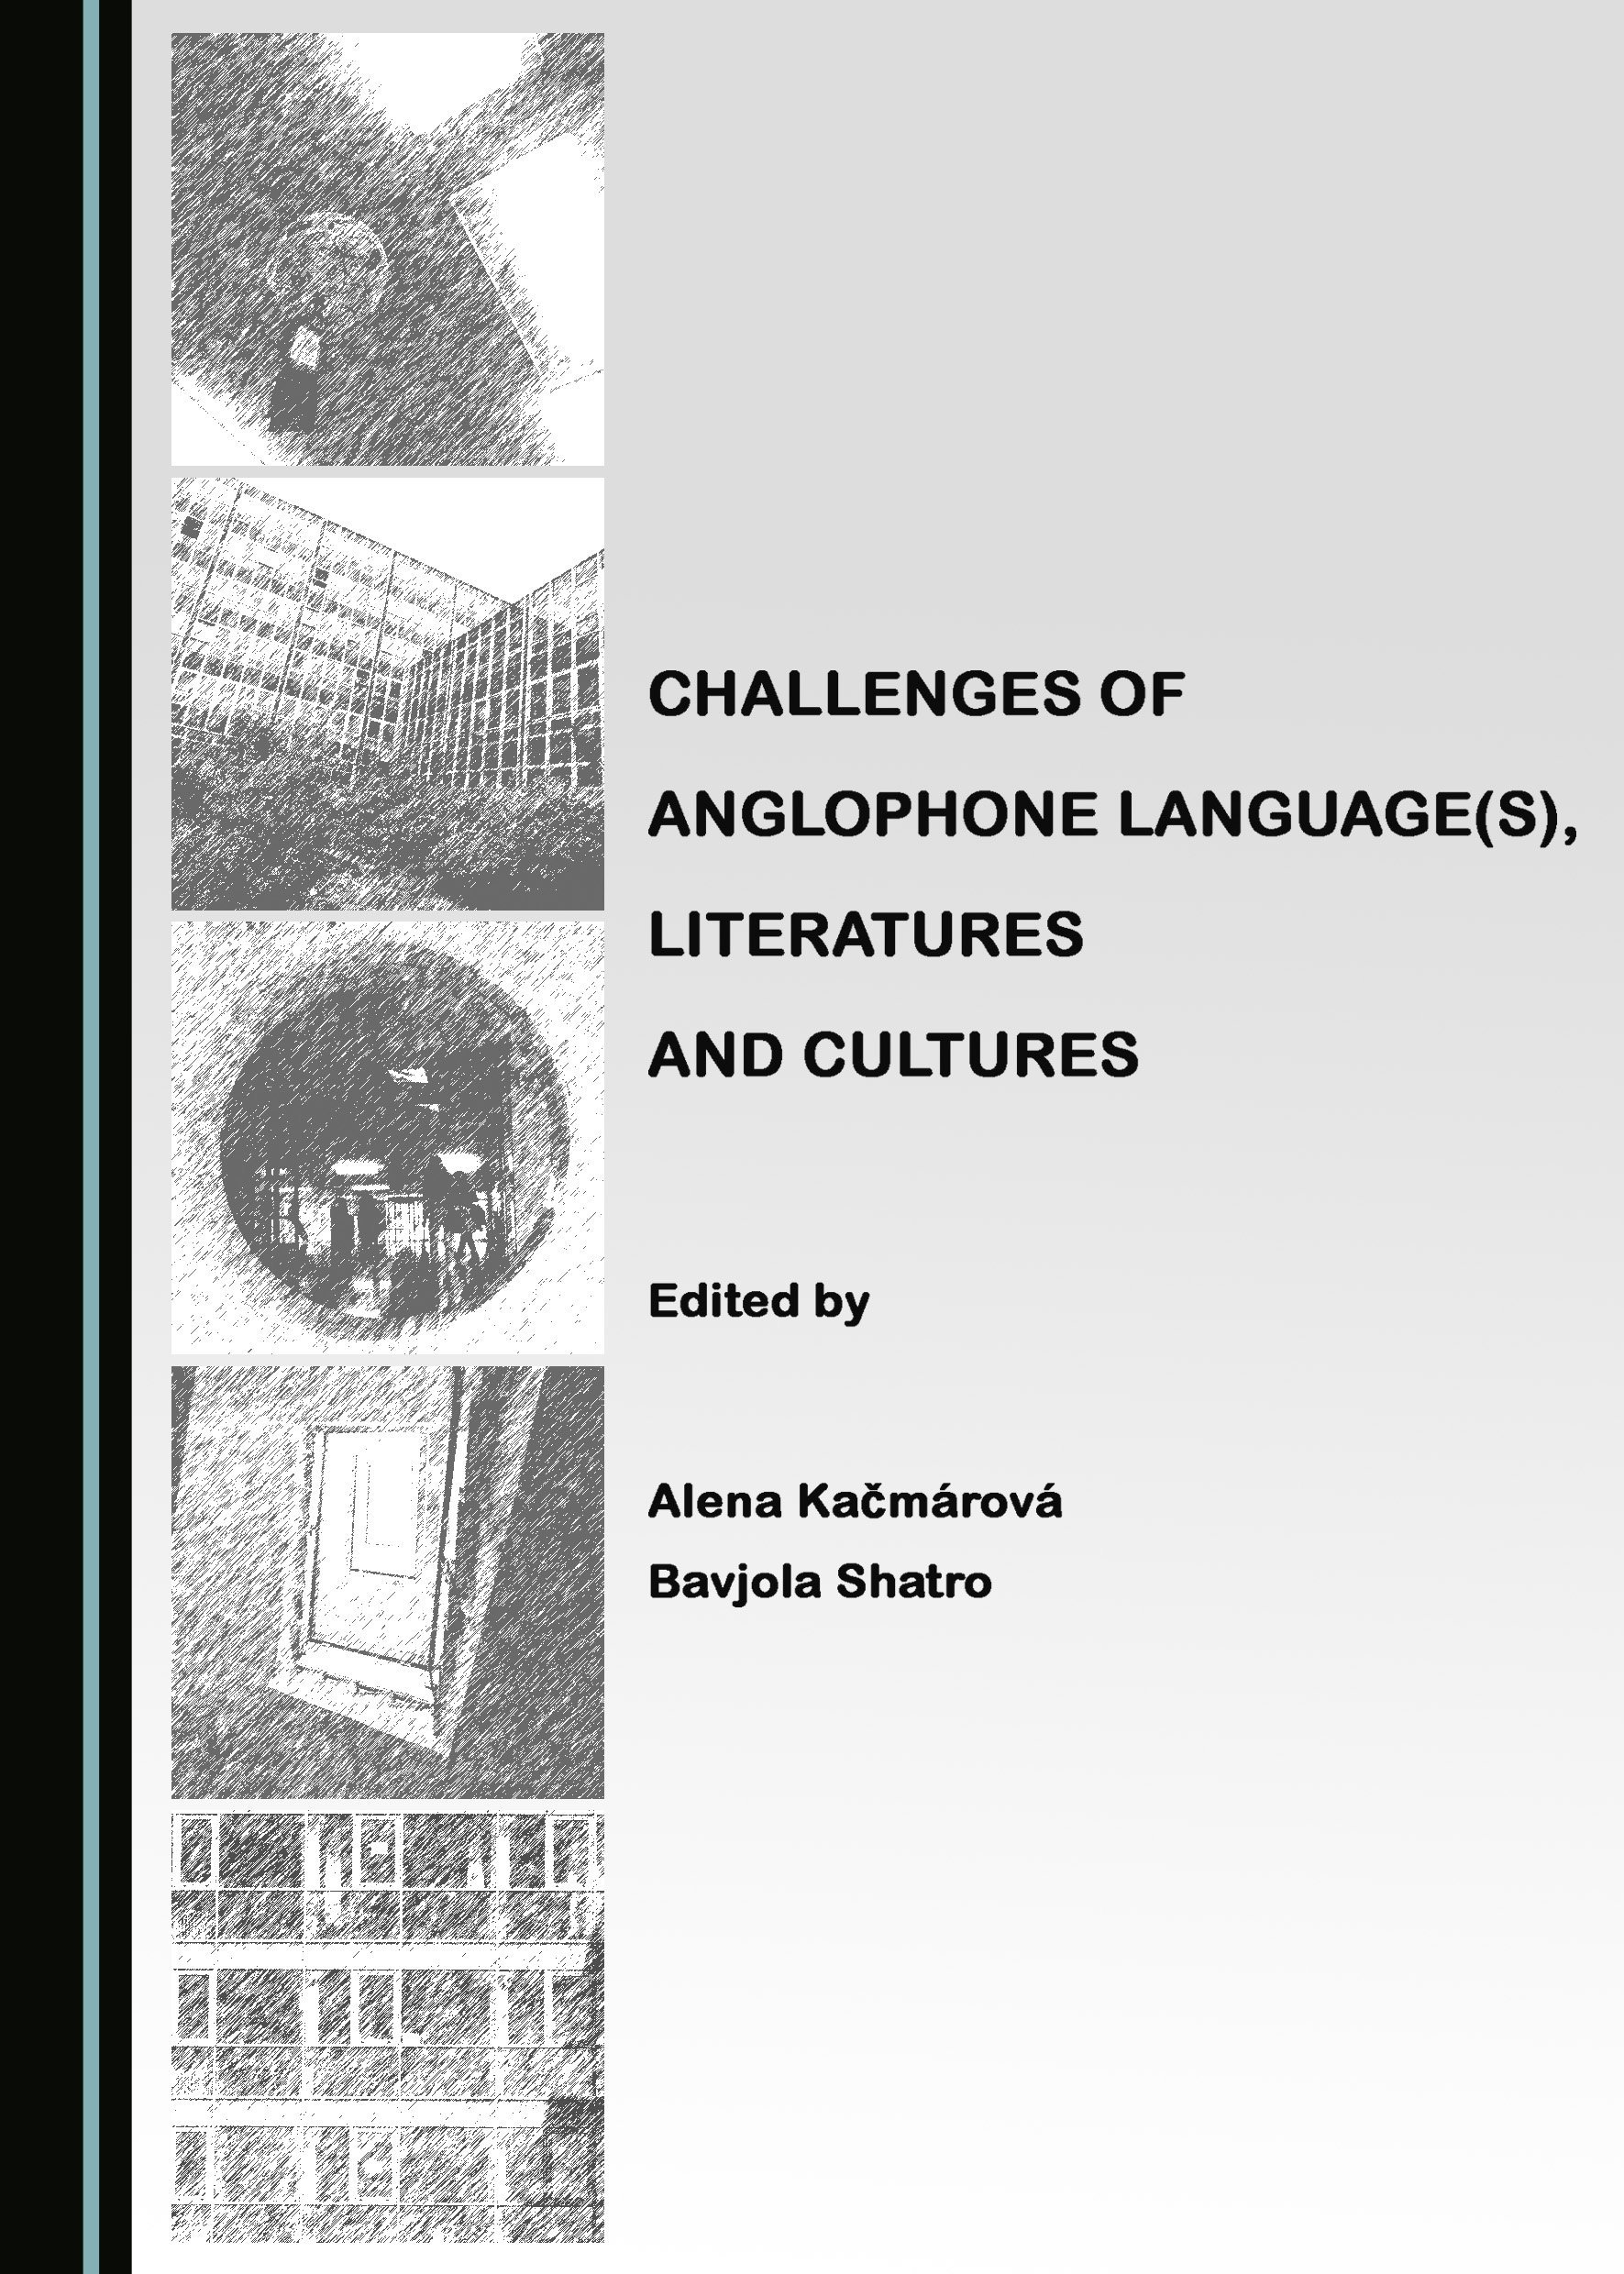 Challenges of Anglophone Language(s), Literatures and Cultures